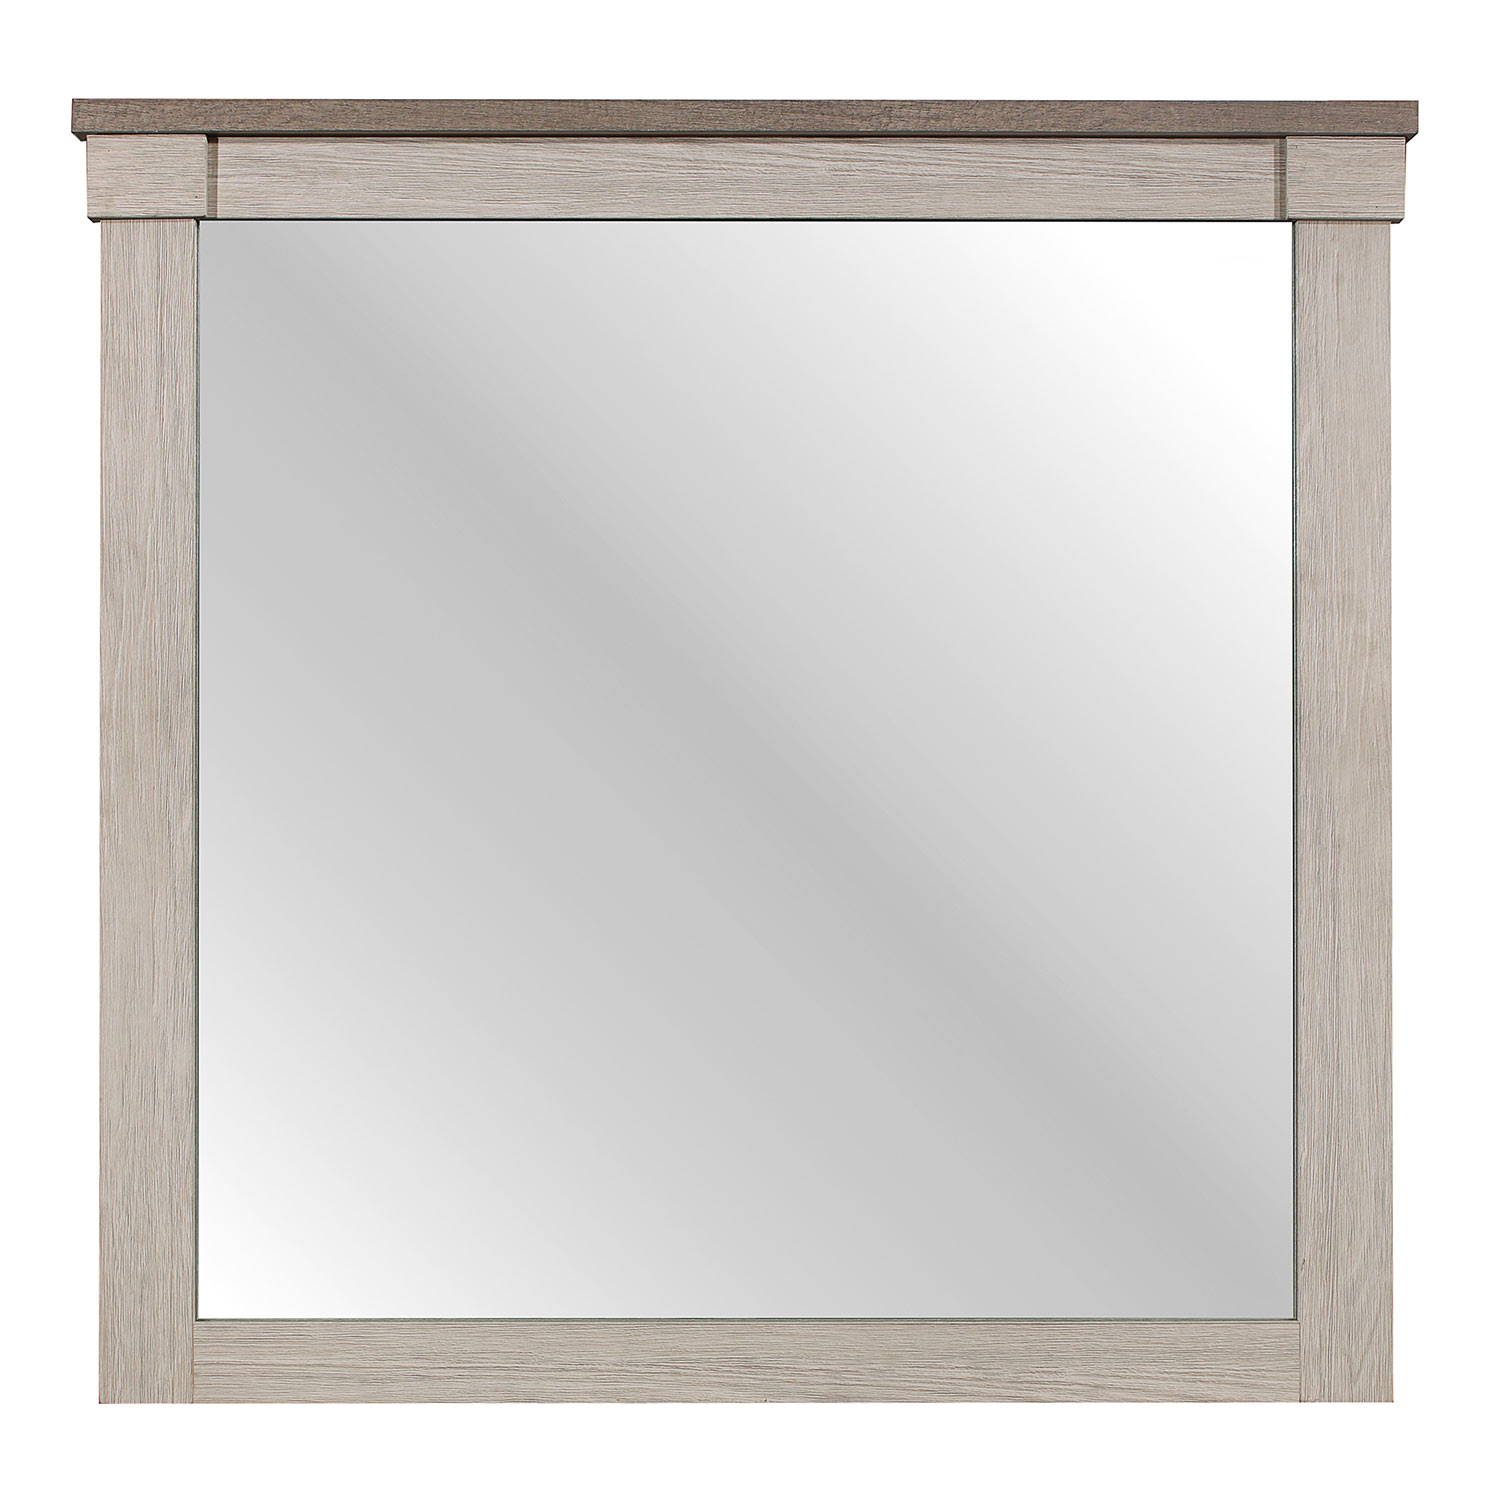 Homelegance Arcadia Mirror - White Framing and Variegated Gray Printed Faux-Wood Grain Veneer